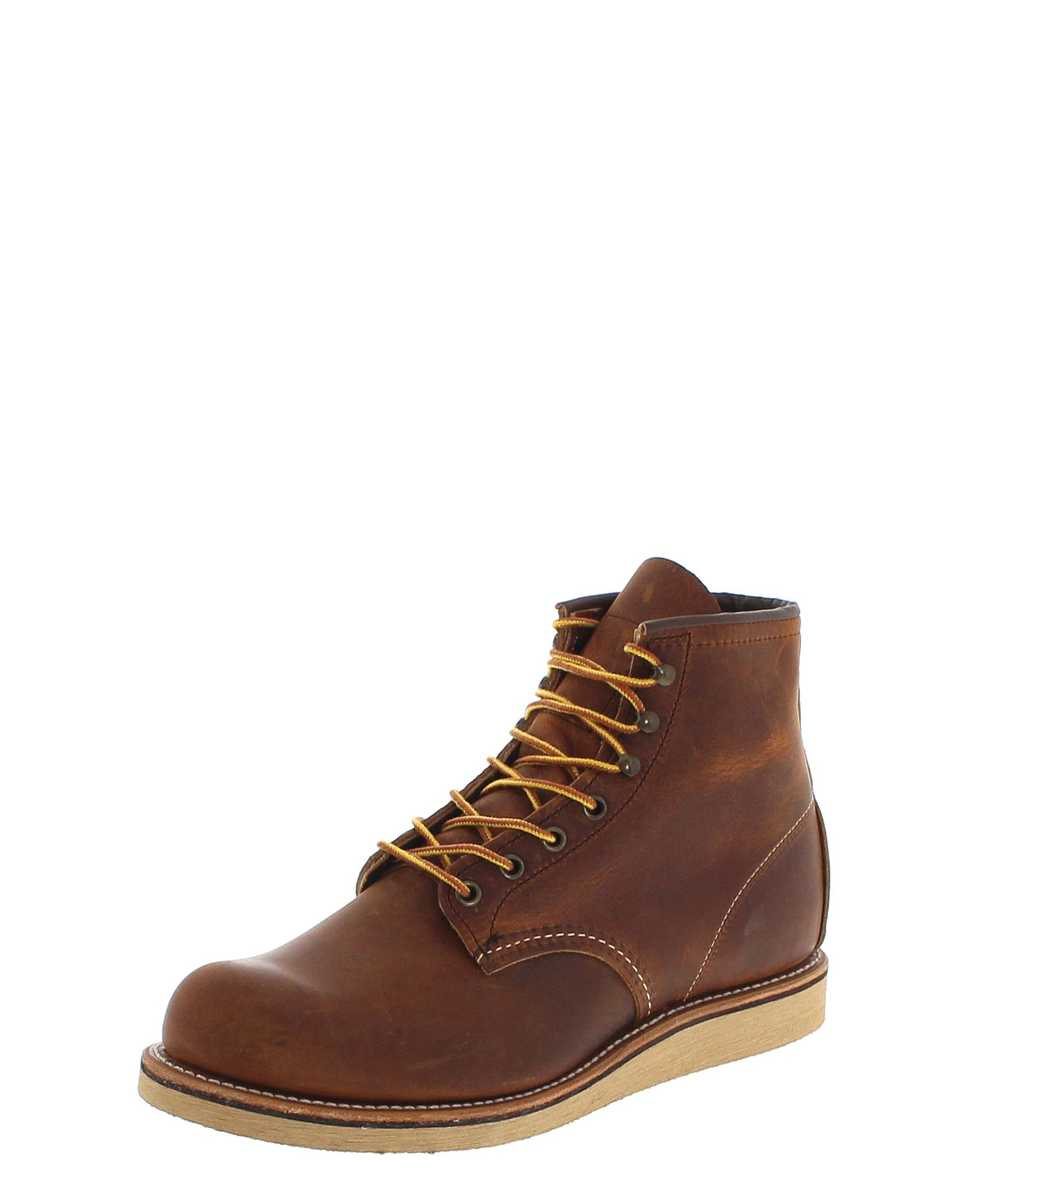 Red Wing Shoes ROVER 2950 Copper Schnürstiefel - braun